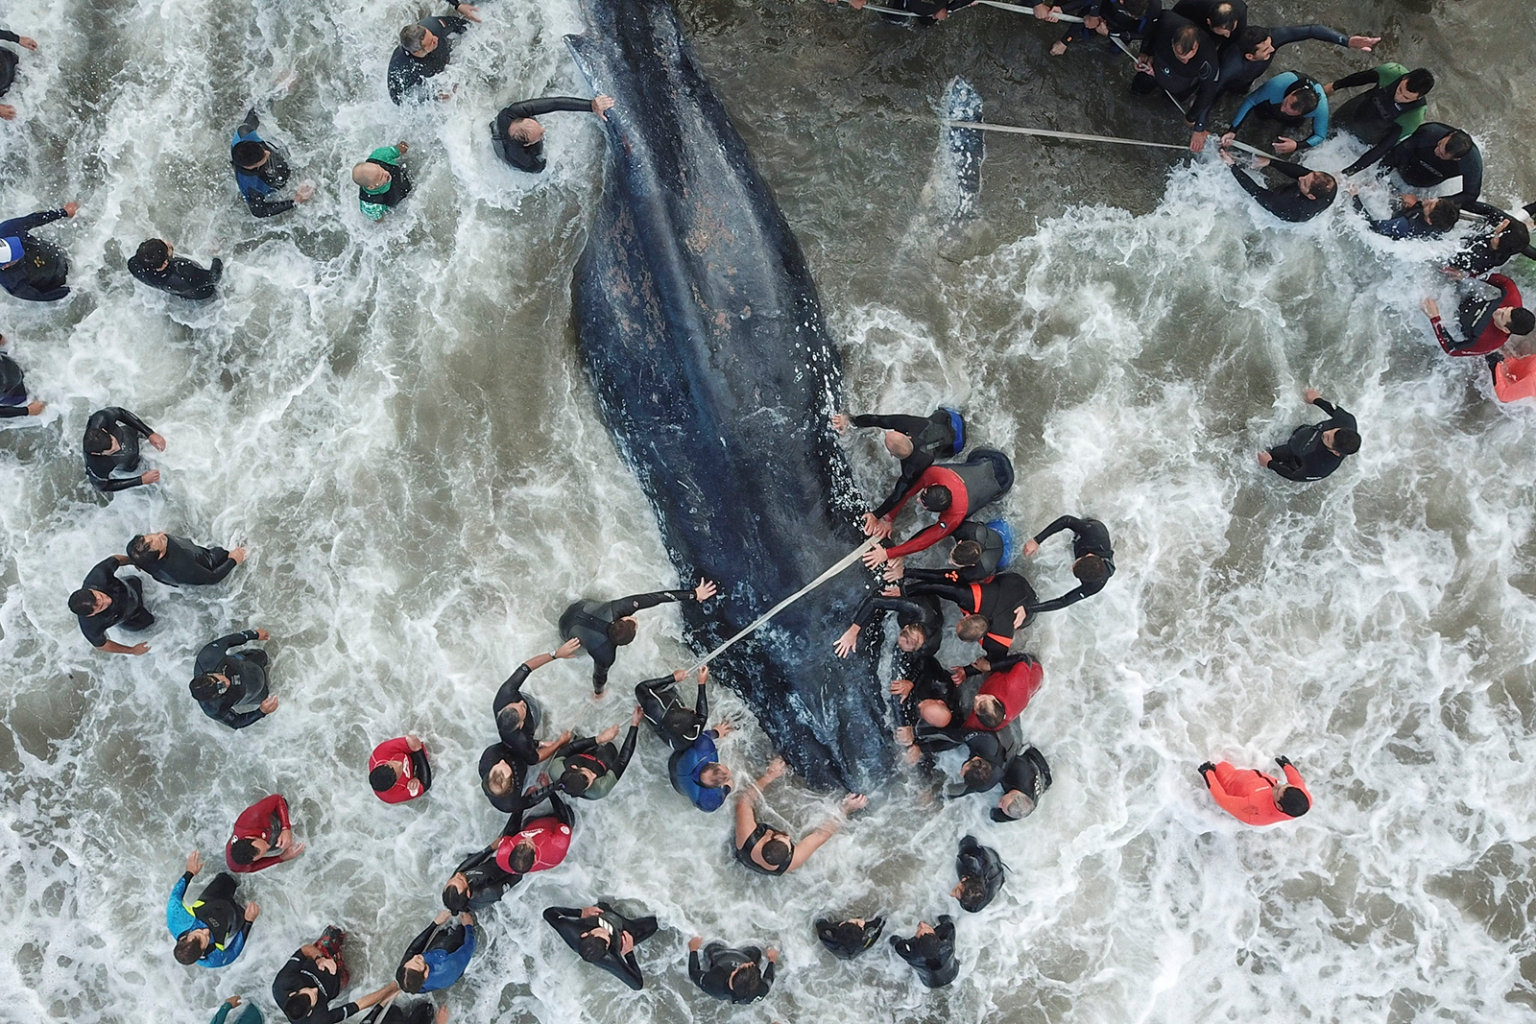 Rescue workers and locals attempt to save a stranded whale in Mar del Plata, Argentina, on April 9. The whale died despite their efforts. IEGO IZQUIERDO/AFP/GETTY IMAGES